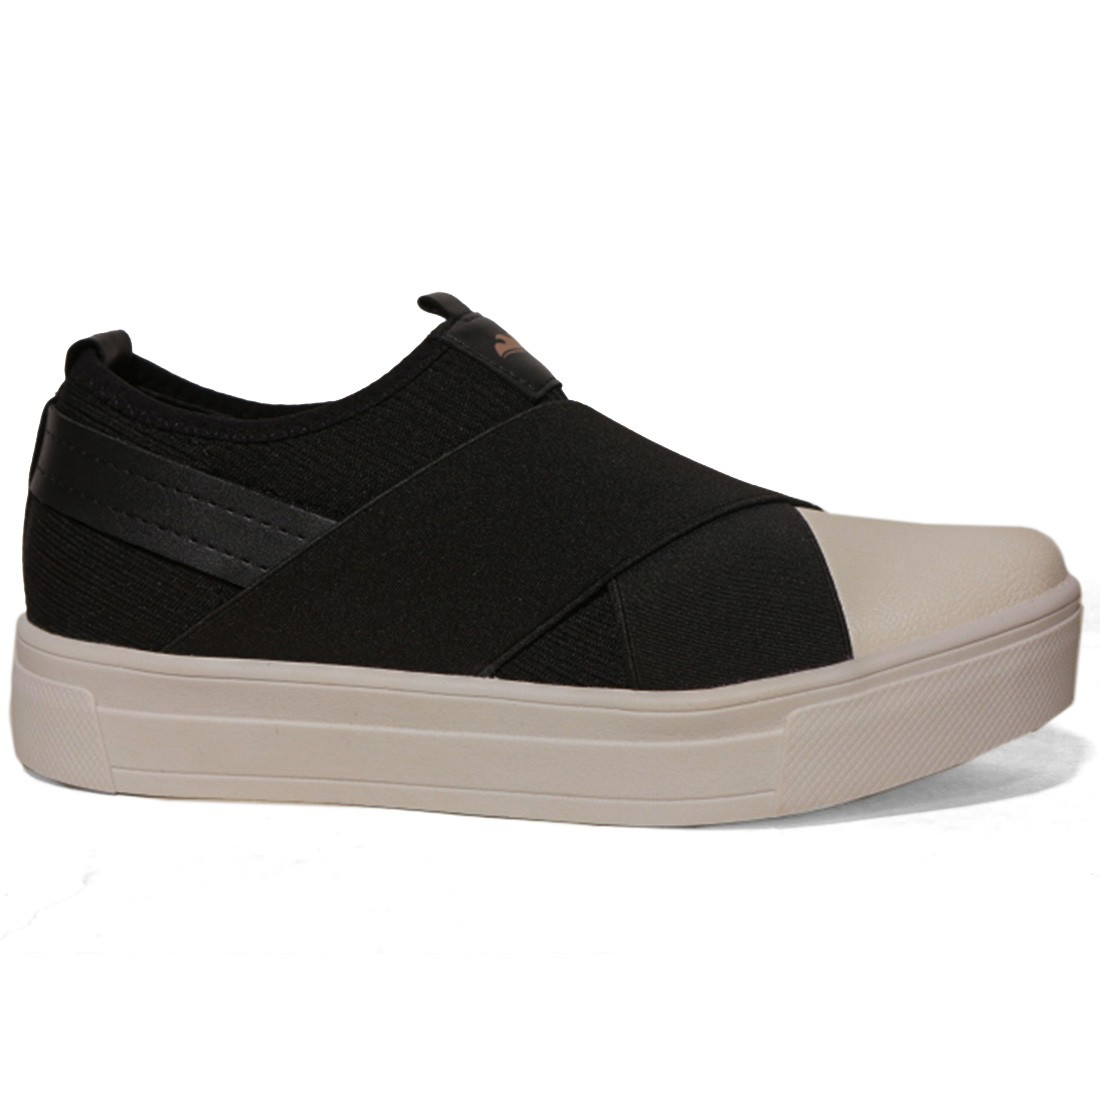 Tênis Dakota G3162 Slip On Flatform Preto